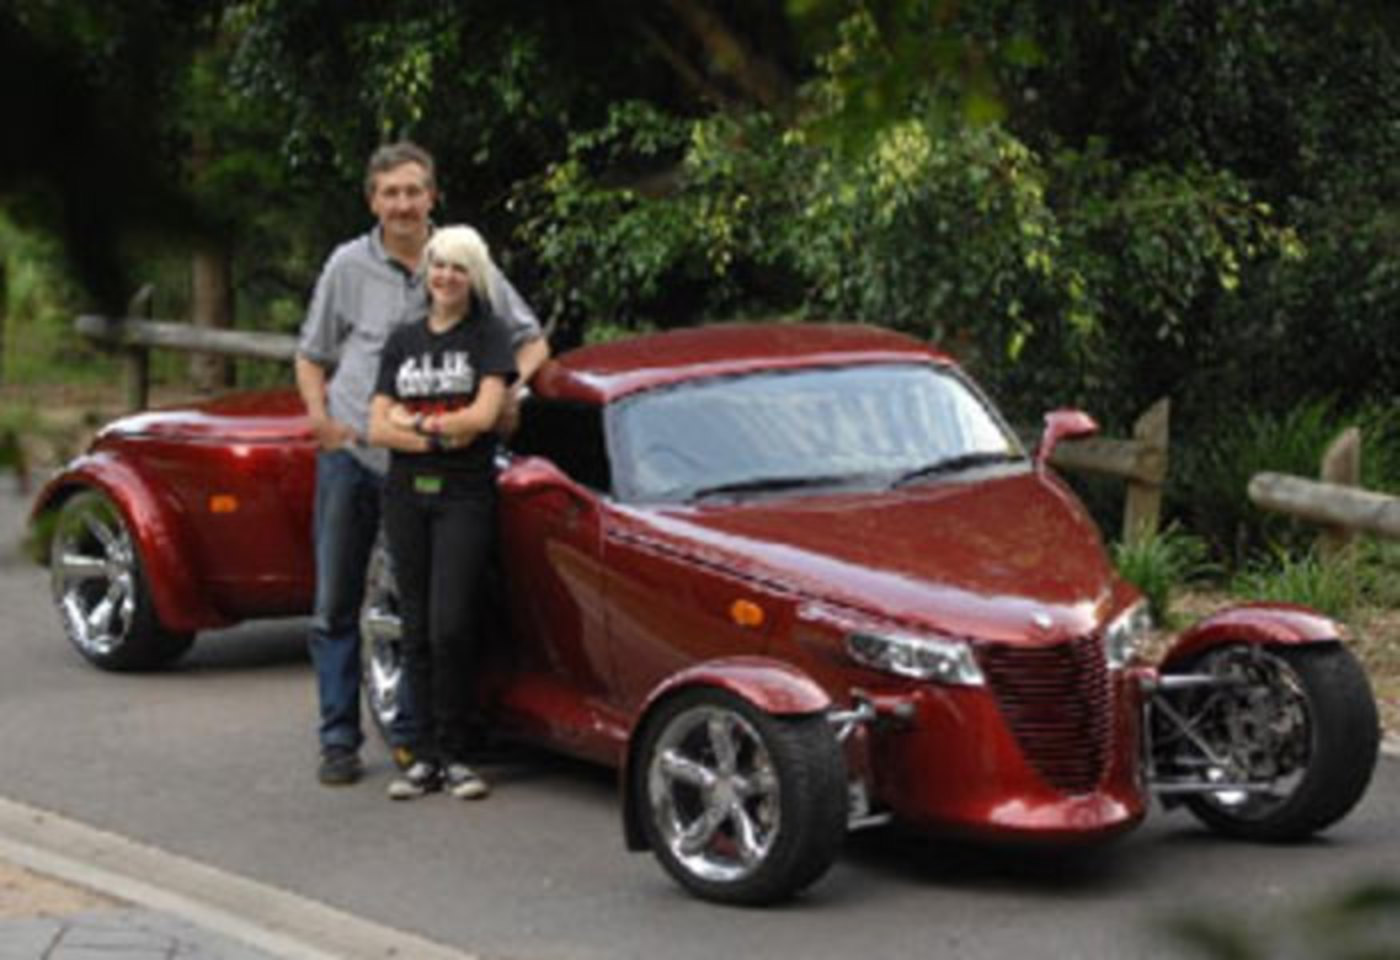 Peter Gasiliauskas's stunning 2002 Chrysler Prowler is believed to be 1 of